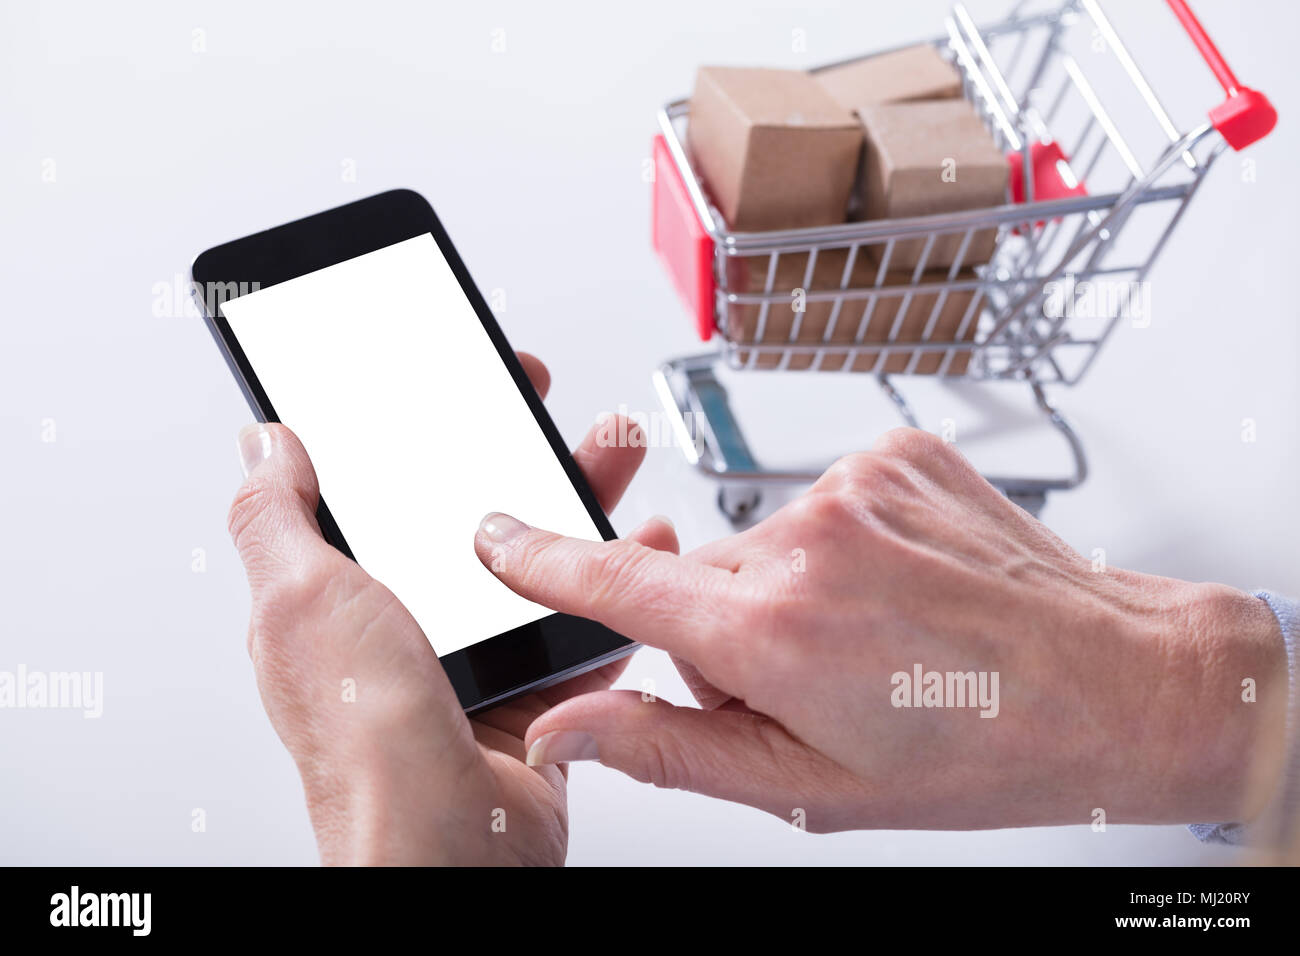 A Person Hand Showing Mobile Phone With Blank Screen And Shopping Cart On The Background - Stock Image